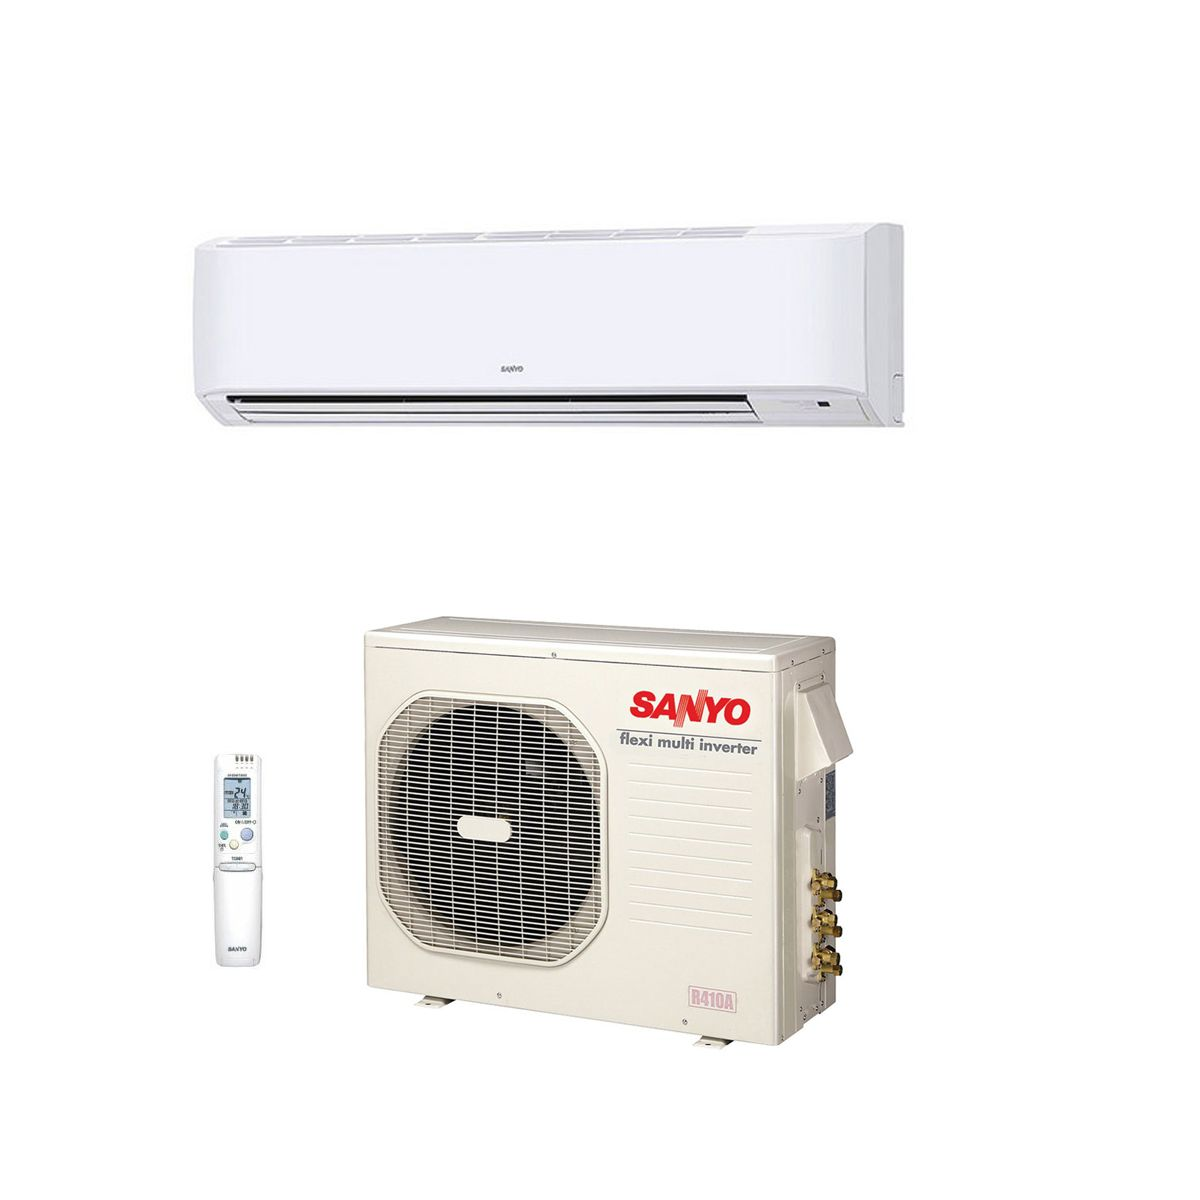 Sanyo Air Conditioning